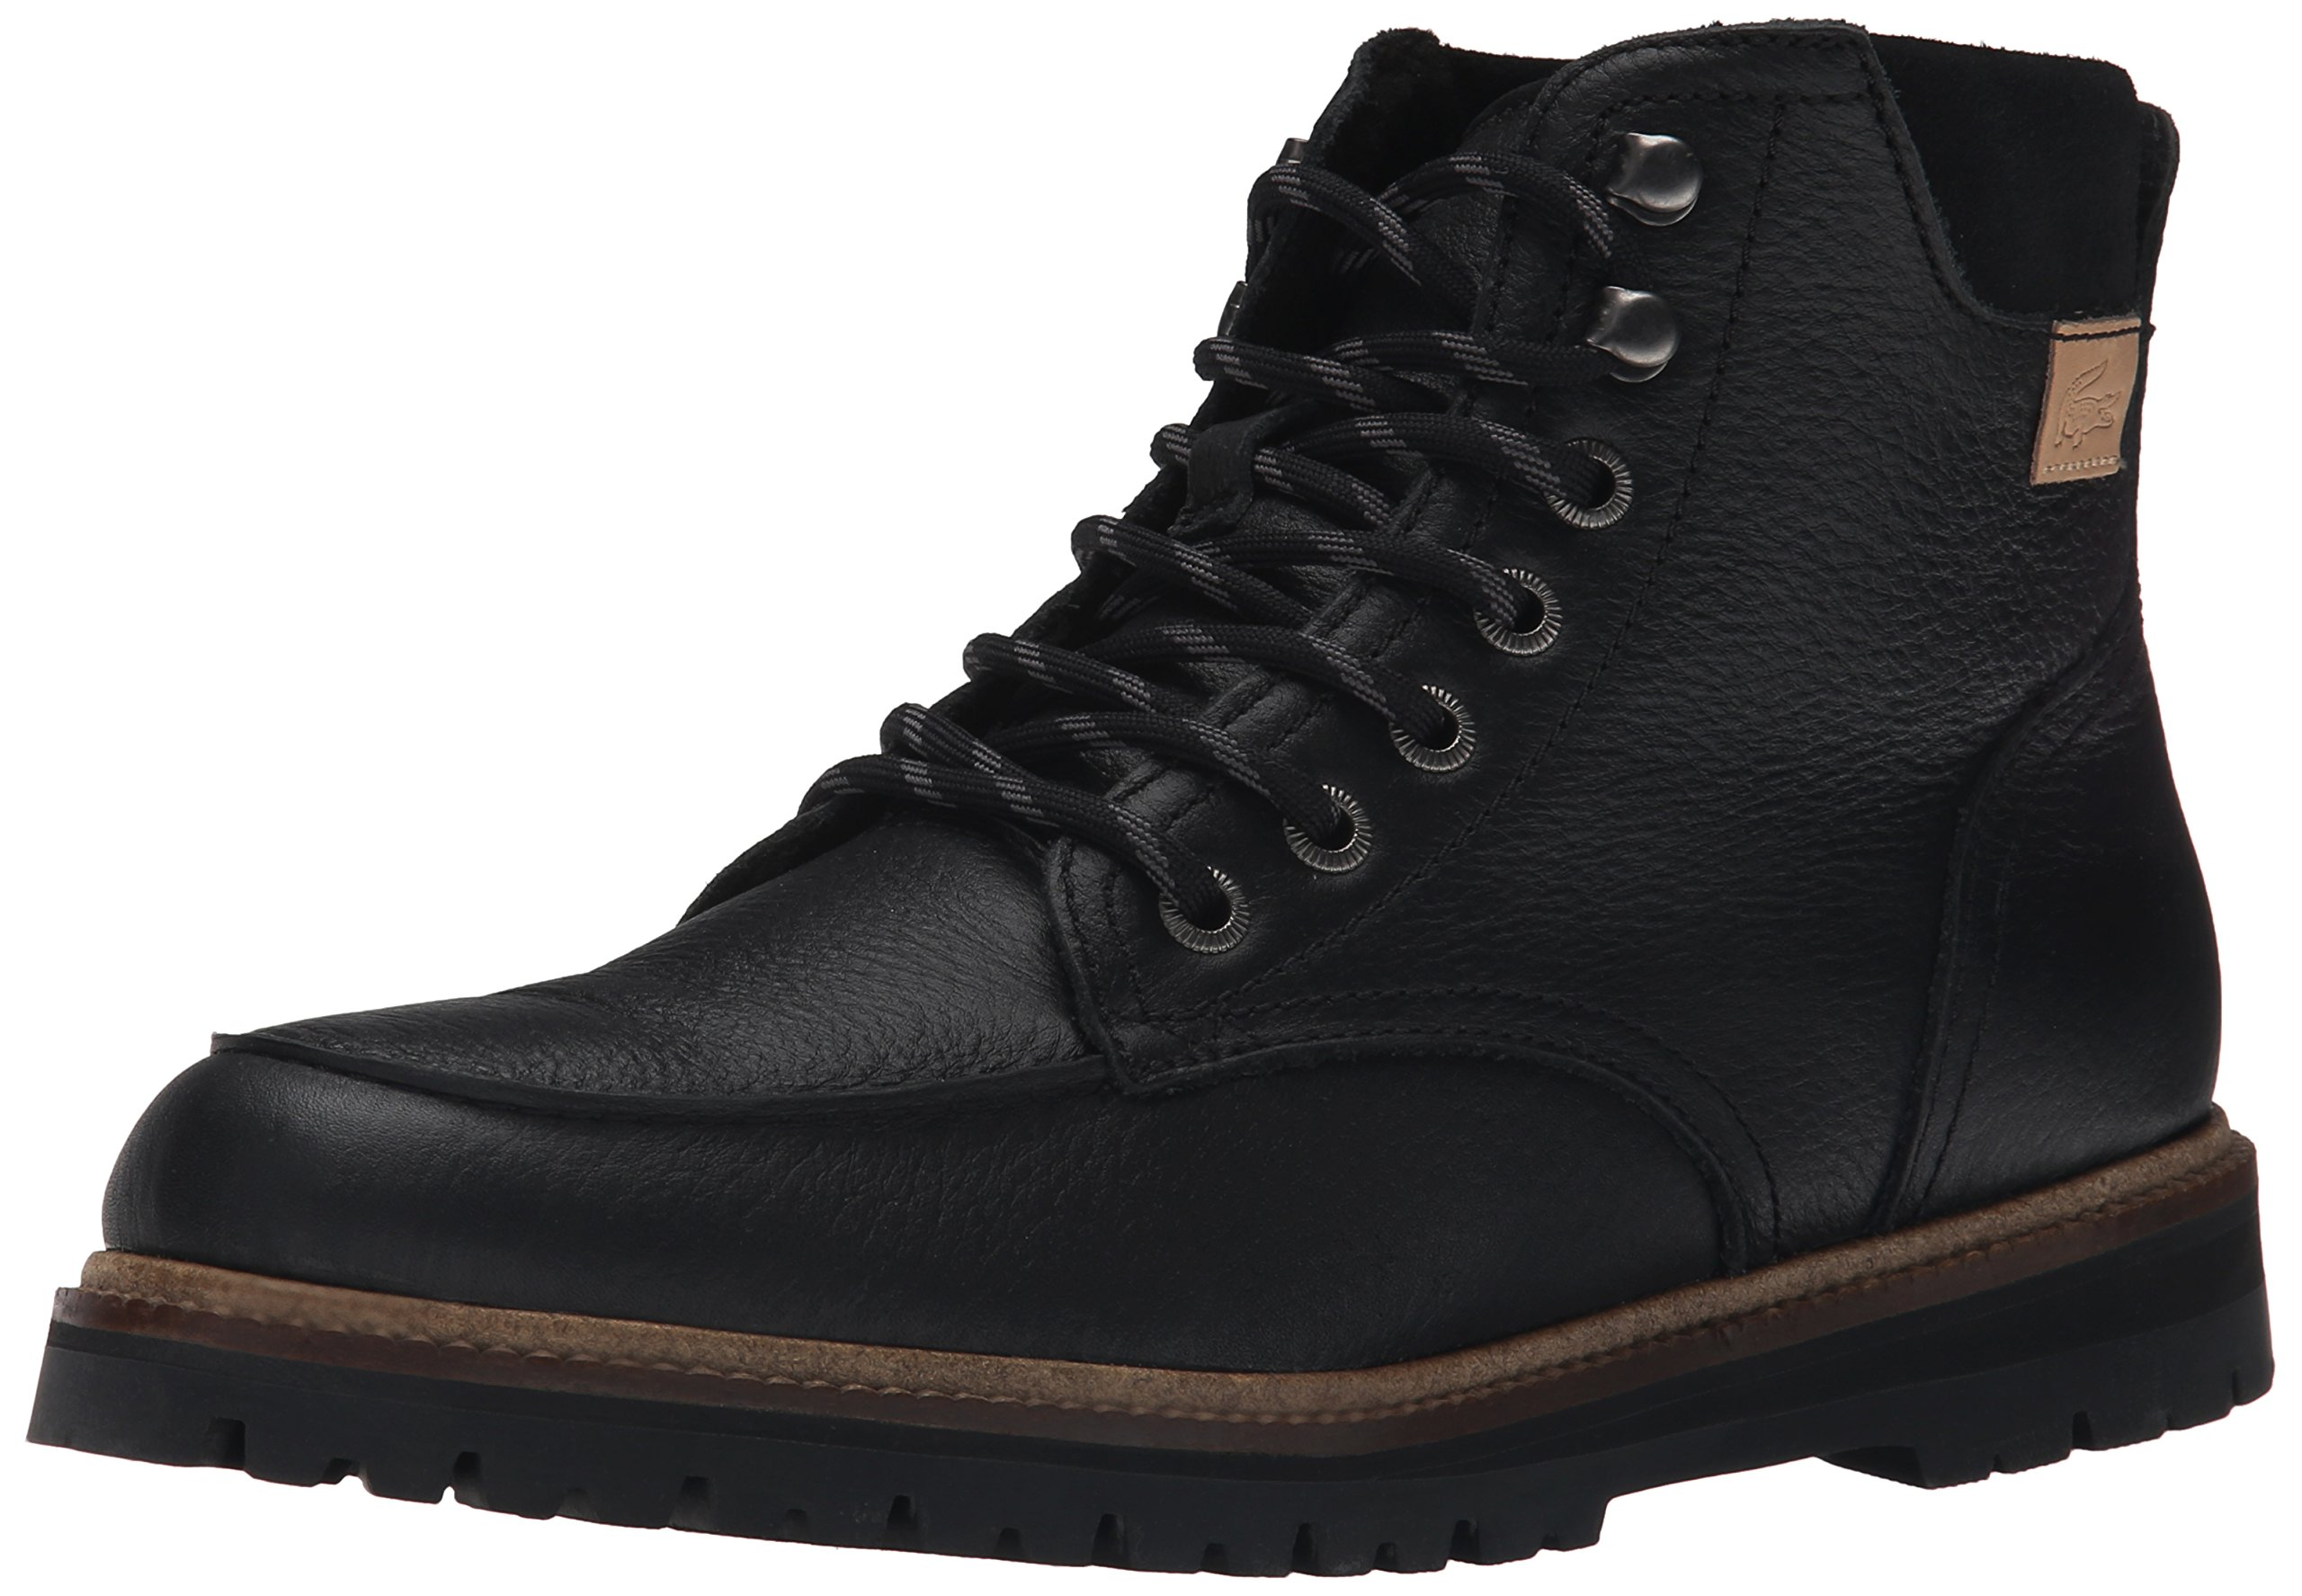 Lacoste Men's Monbard 2 Winter Boot, Black, 13 M US